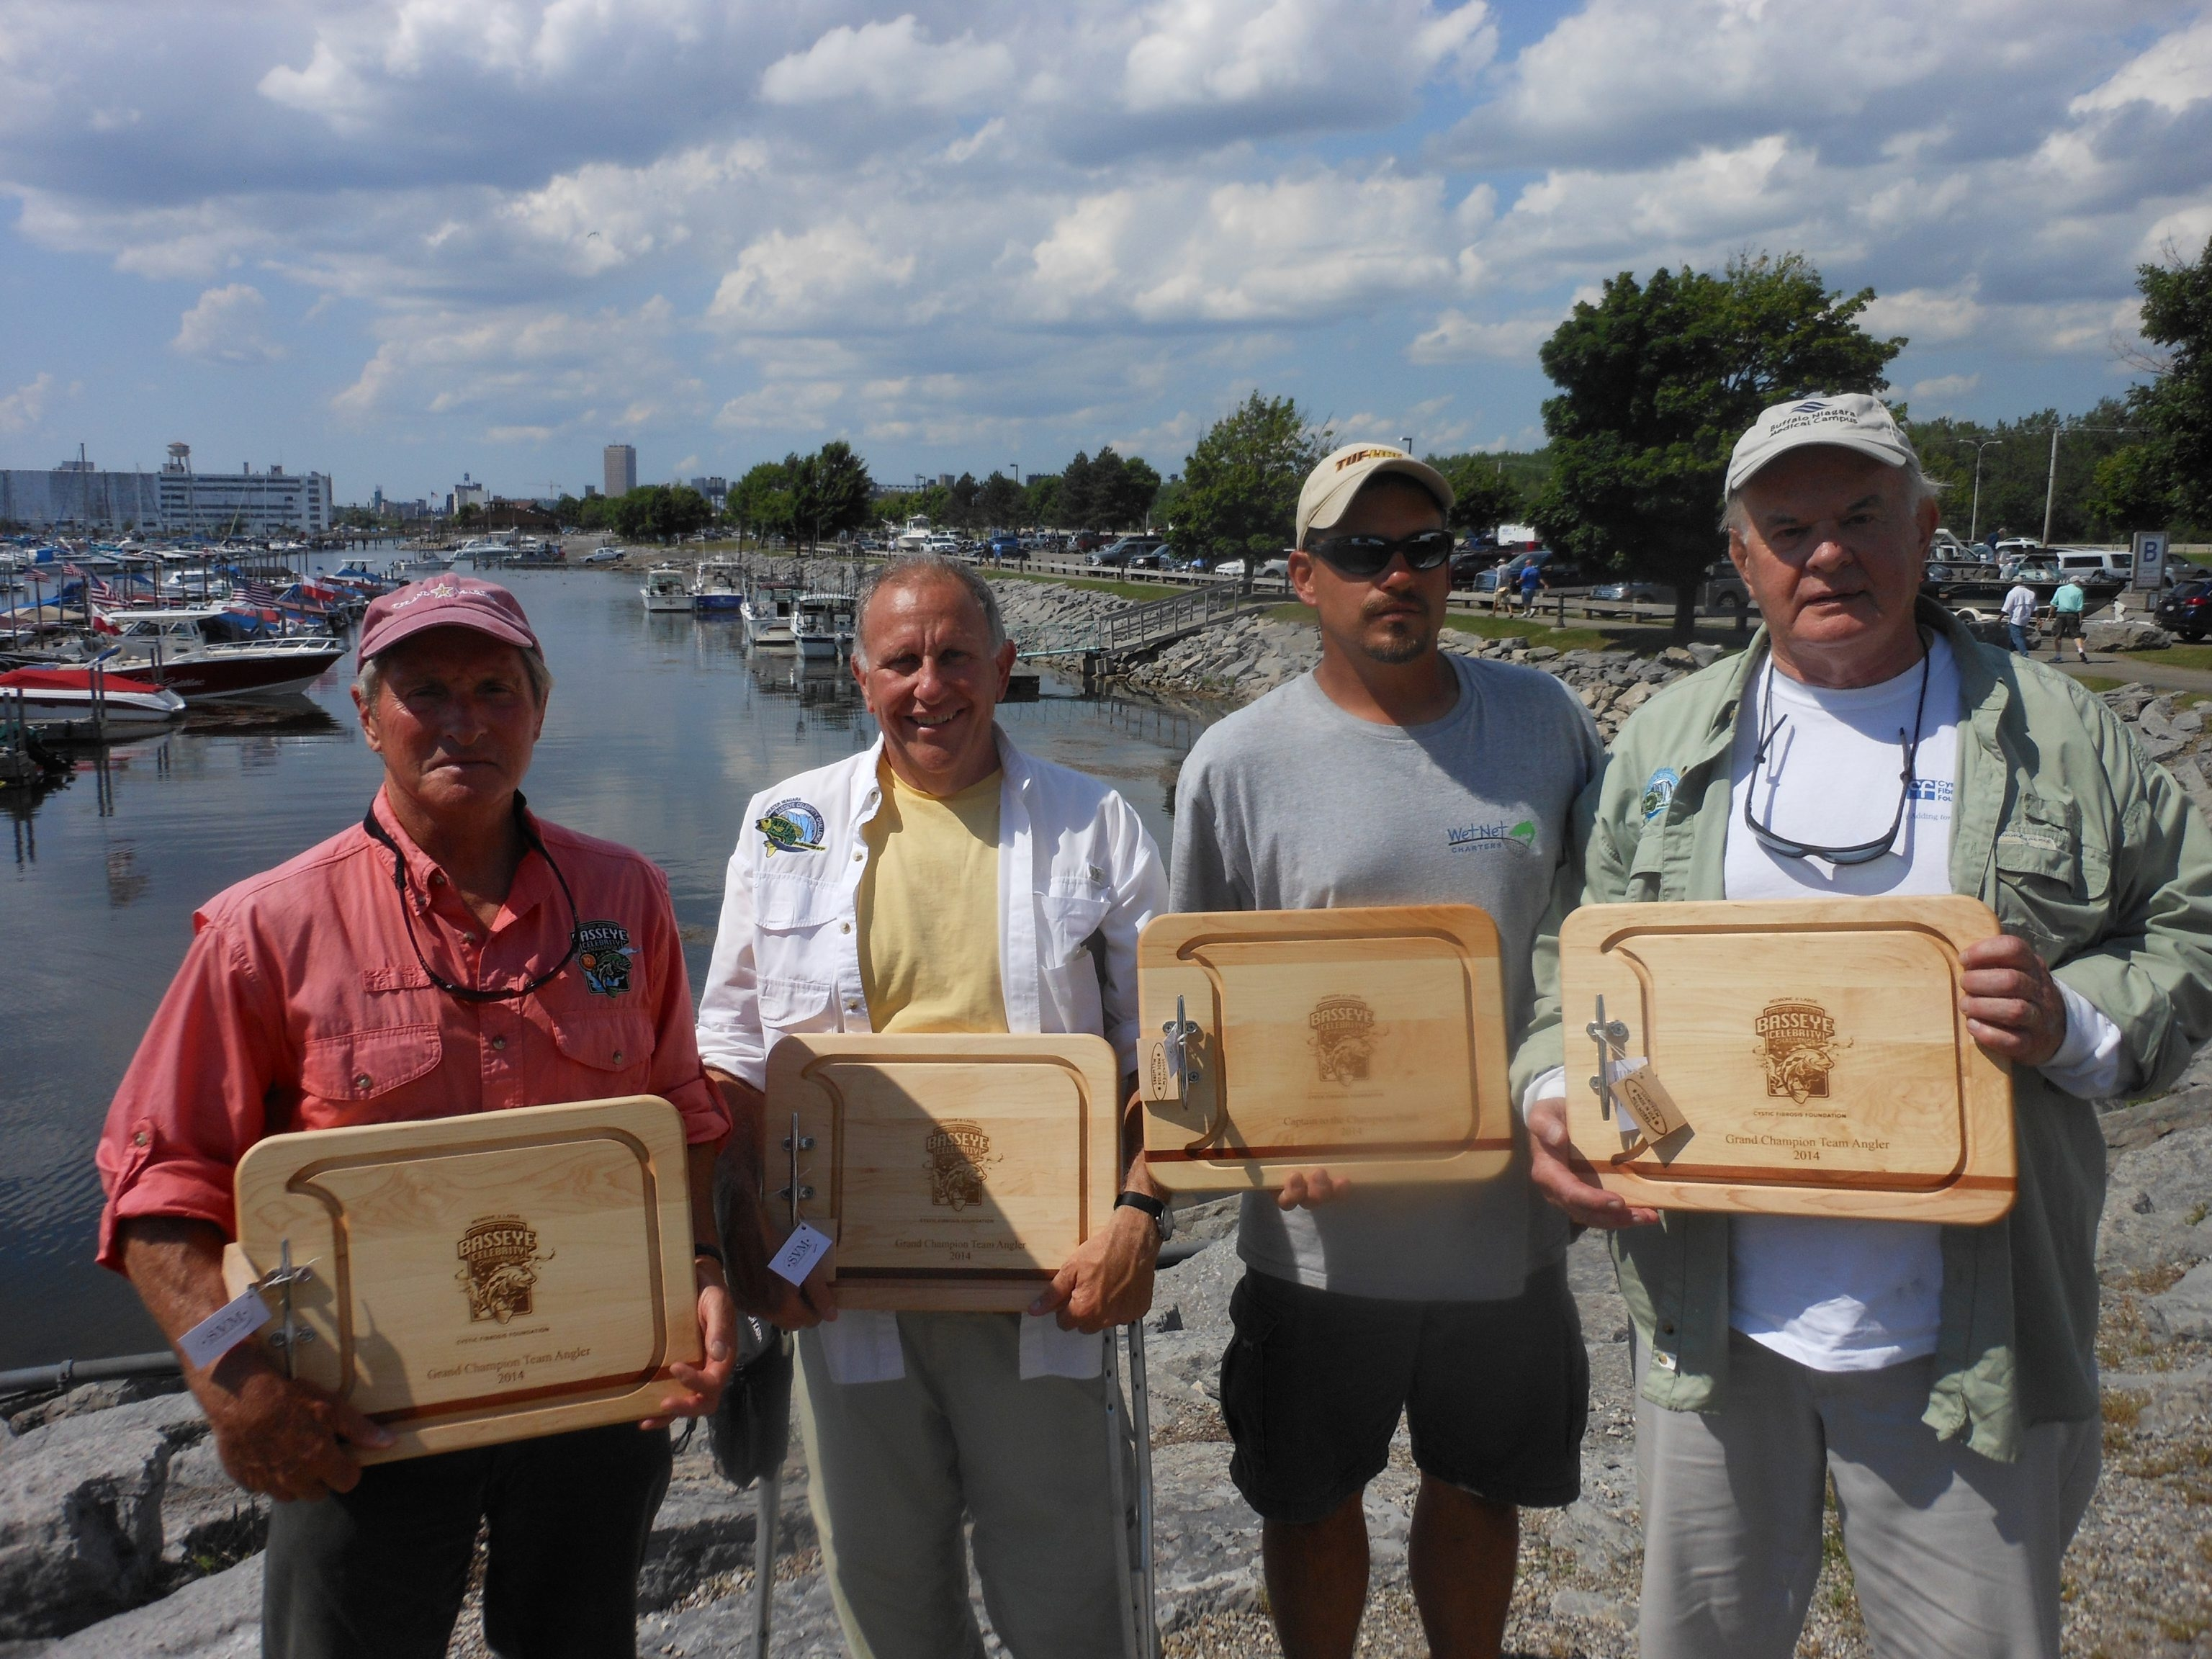 The BassEye team of Mike Keller, Fred Saia, Capt. Matt Yablonsky and Jim Schmit finished as Grand Champions.